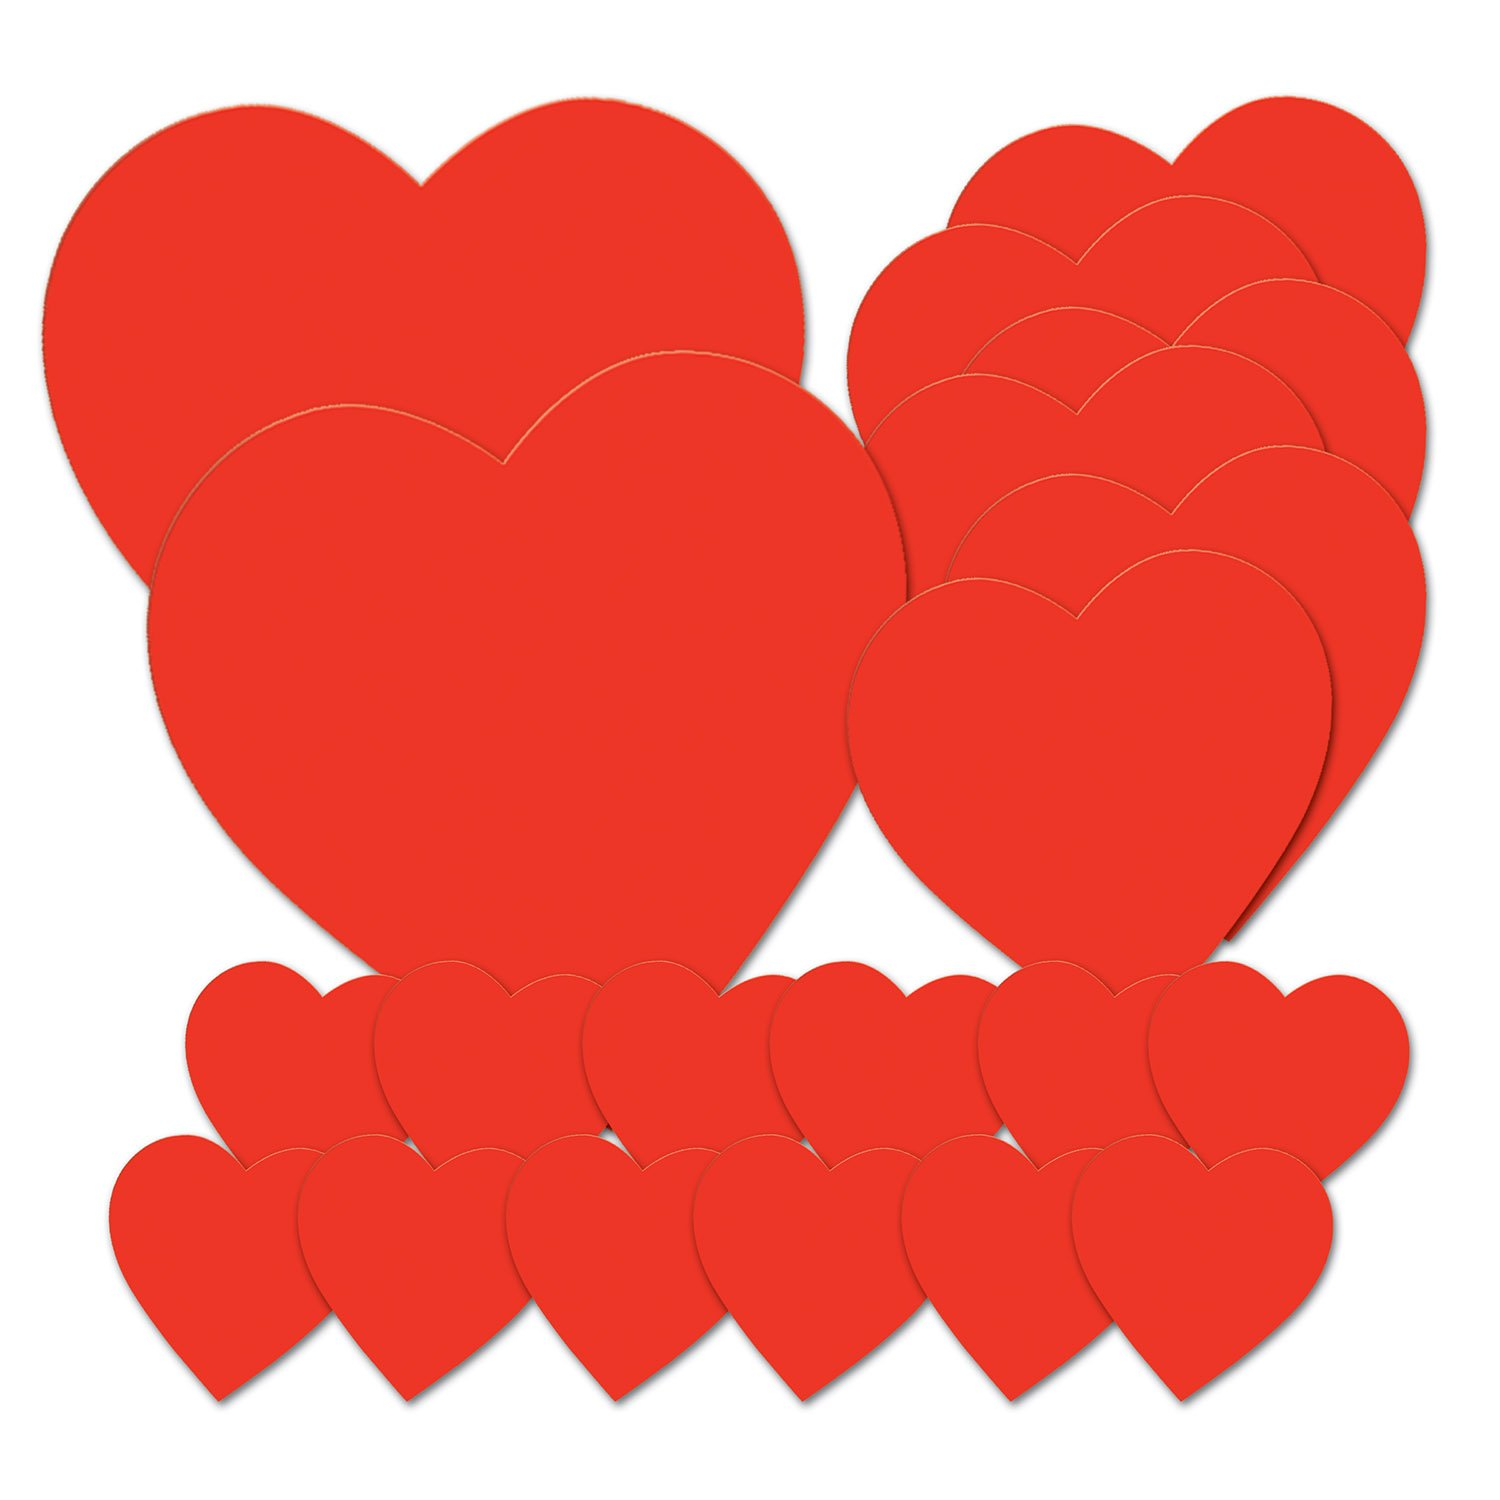 Beistle 77867 Printed Heart Cutouts, Red, Pack of 20 by Beistle